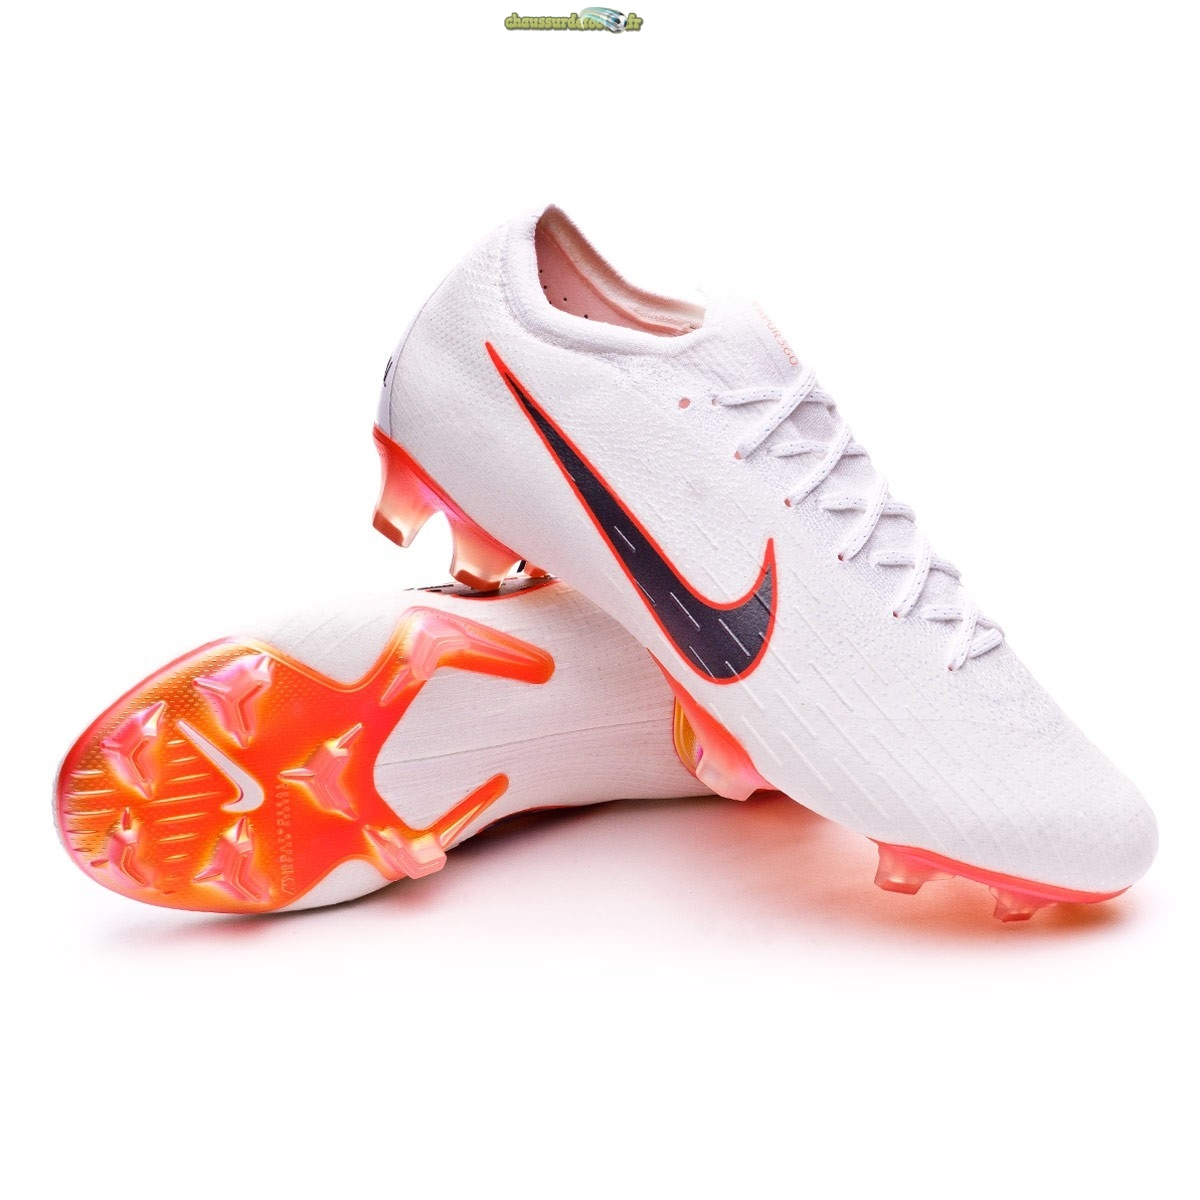 Chaussure Nike Mercurial Vapor XII Elite FG Blanc Orange